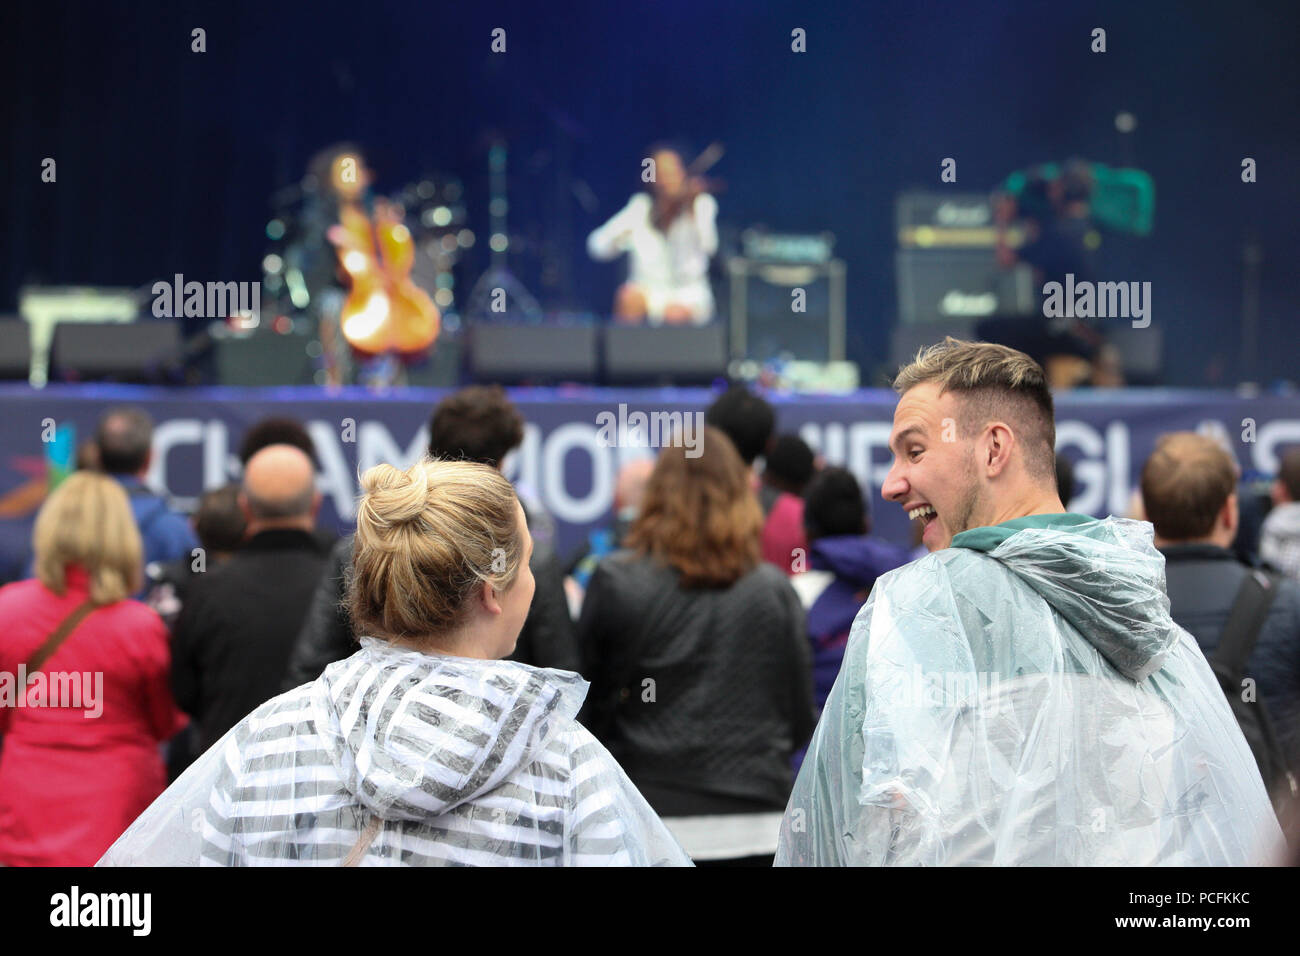 Glasgow 1 August 2018. Big Opening Party in George Square for the 2018 European Championships. A slightly damp start hasn't dampened spirits. Credit Alan Oliver / Alamy Live News Stock Photo